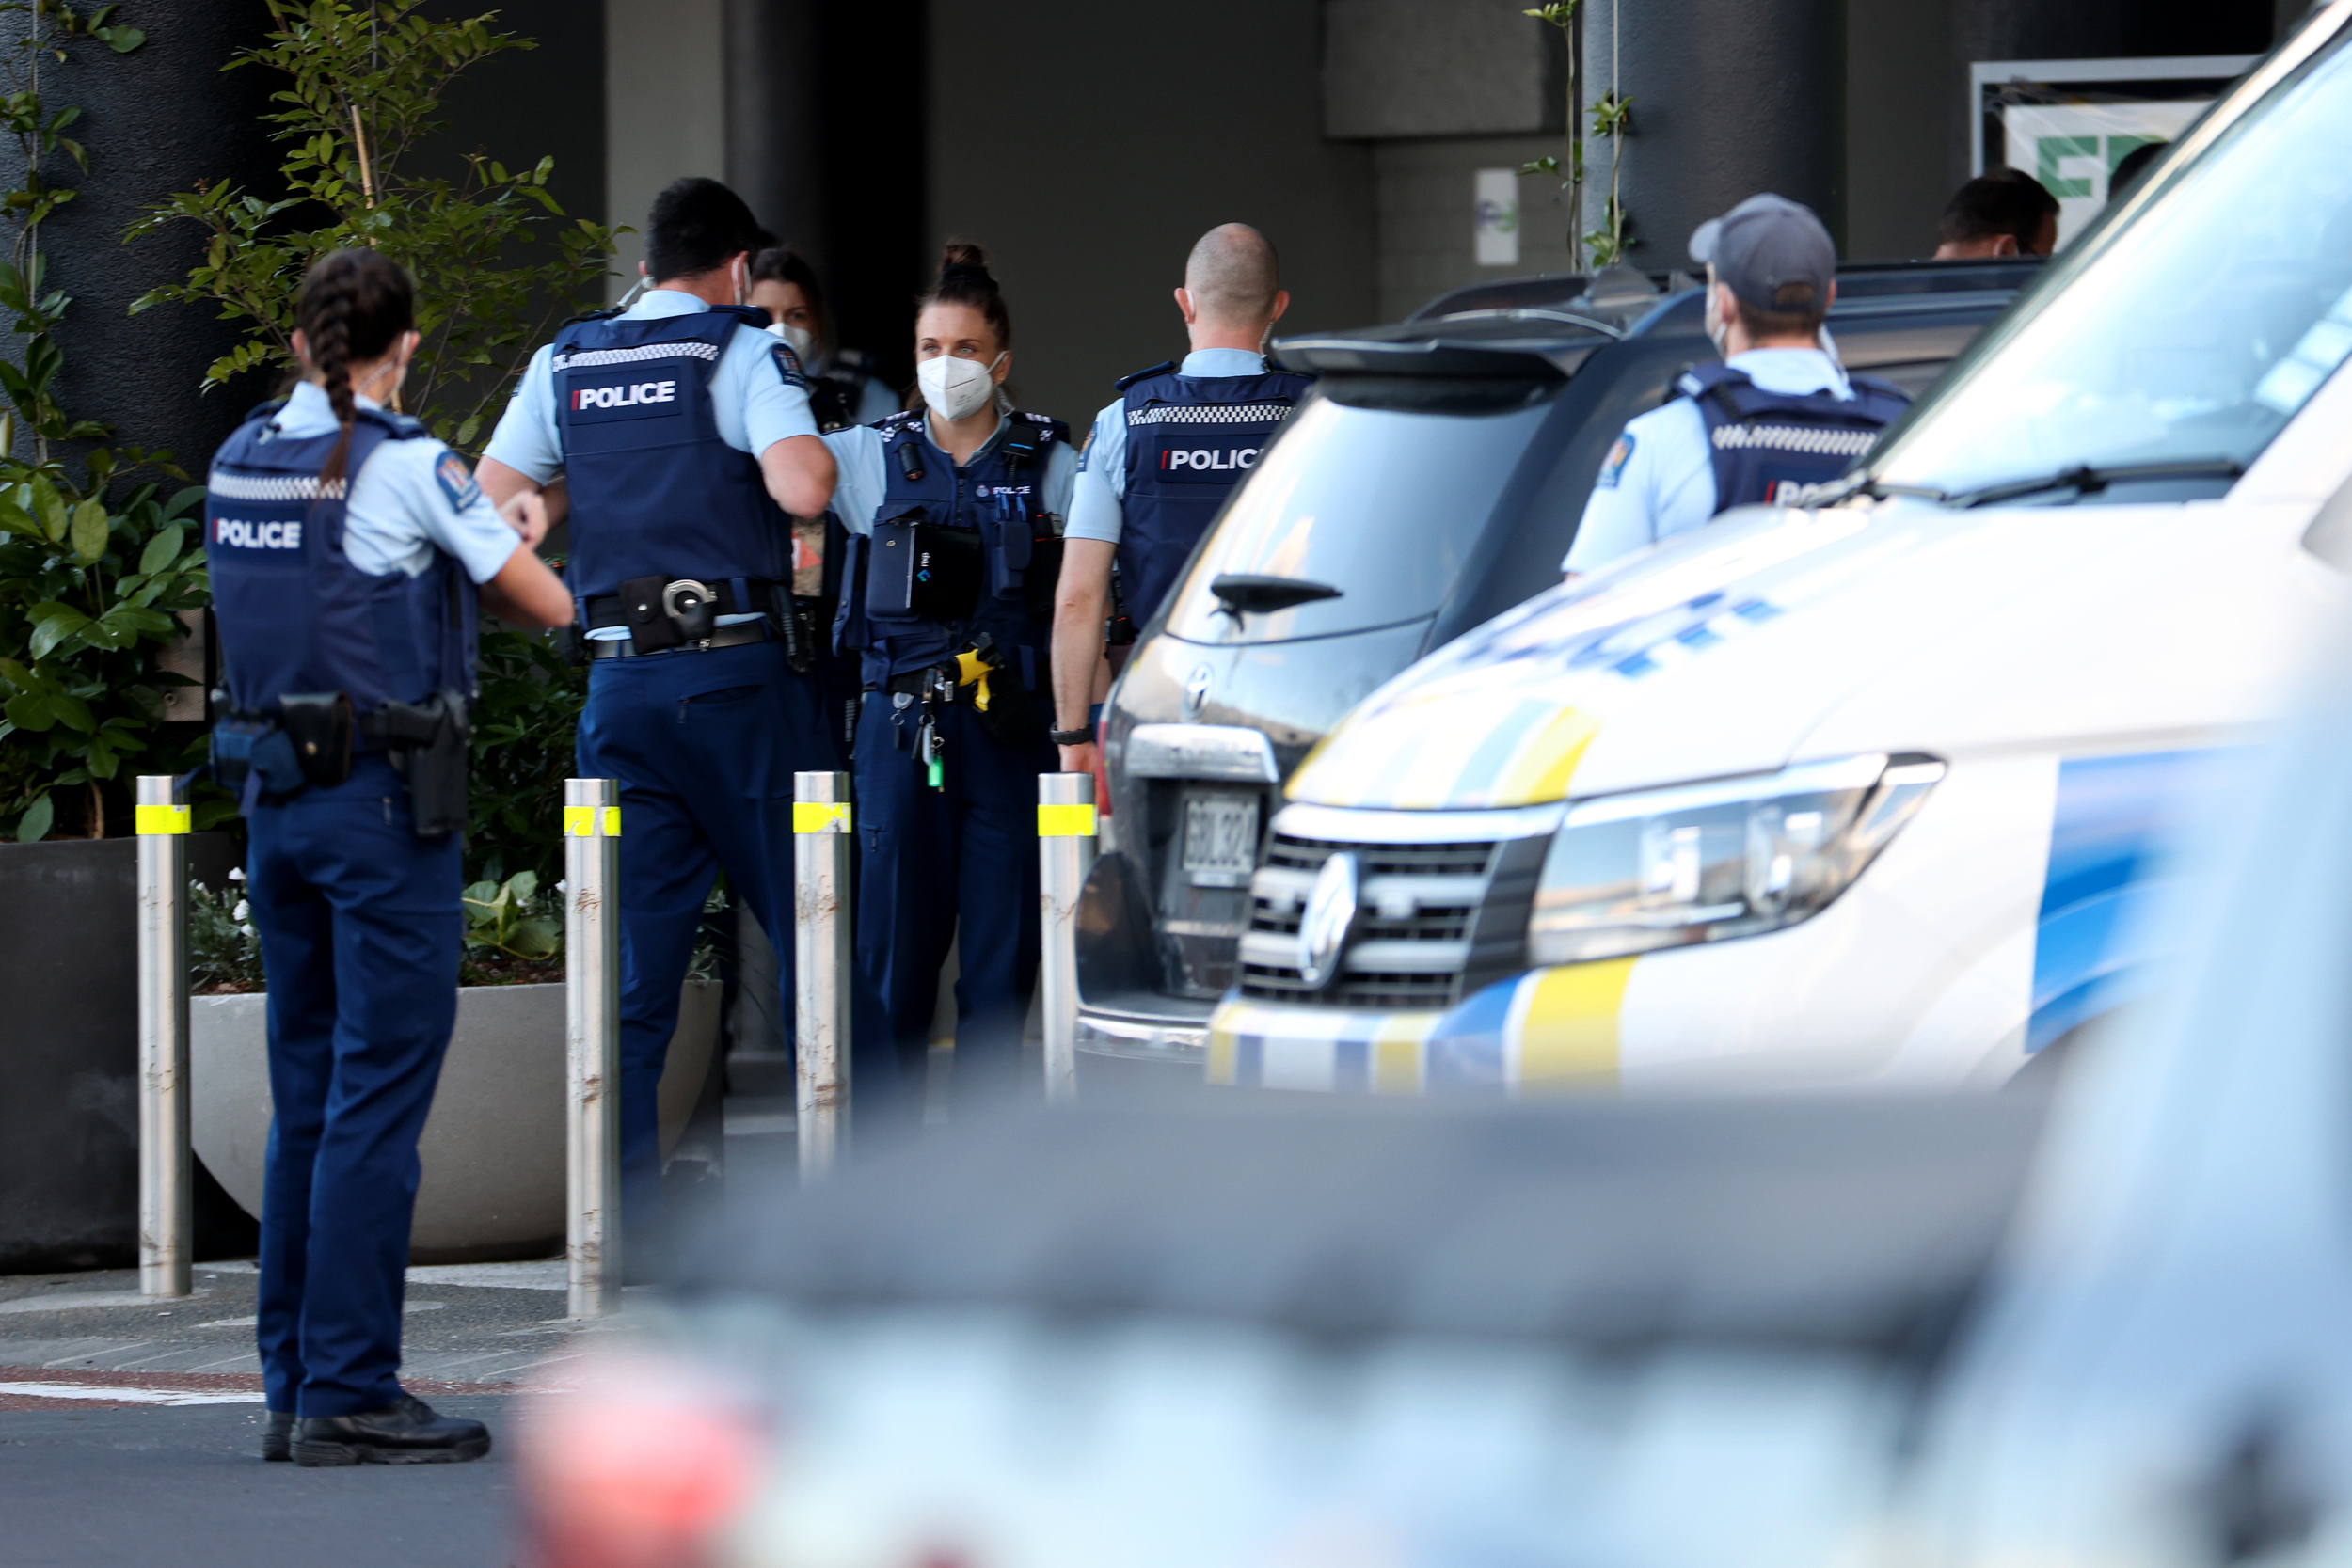 New Zealand police kill 'violent extremist' after he stabs 6 people